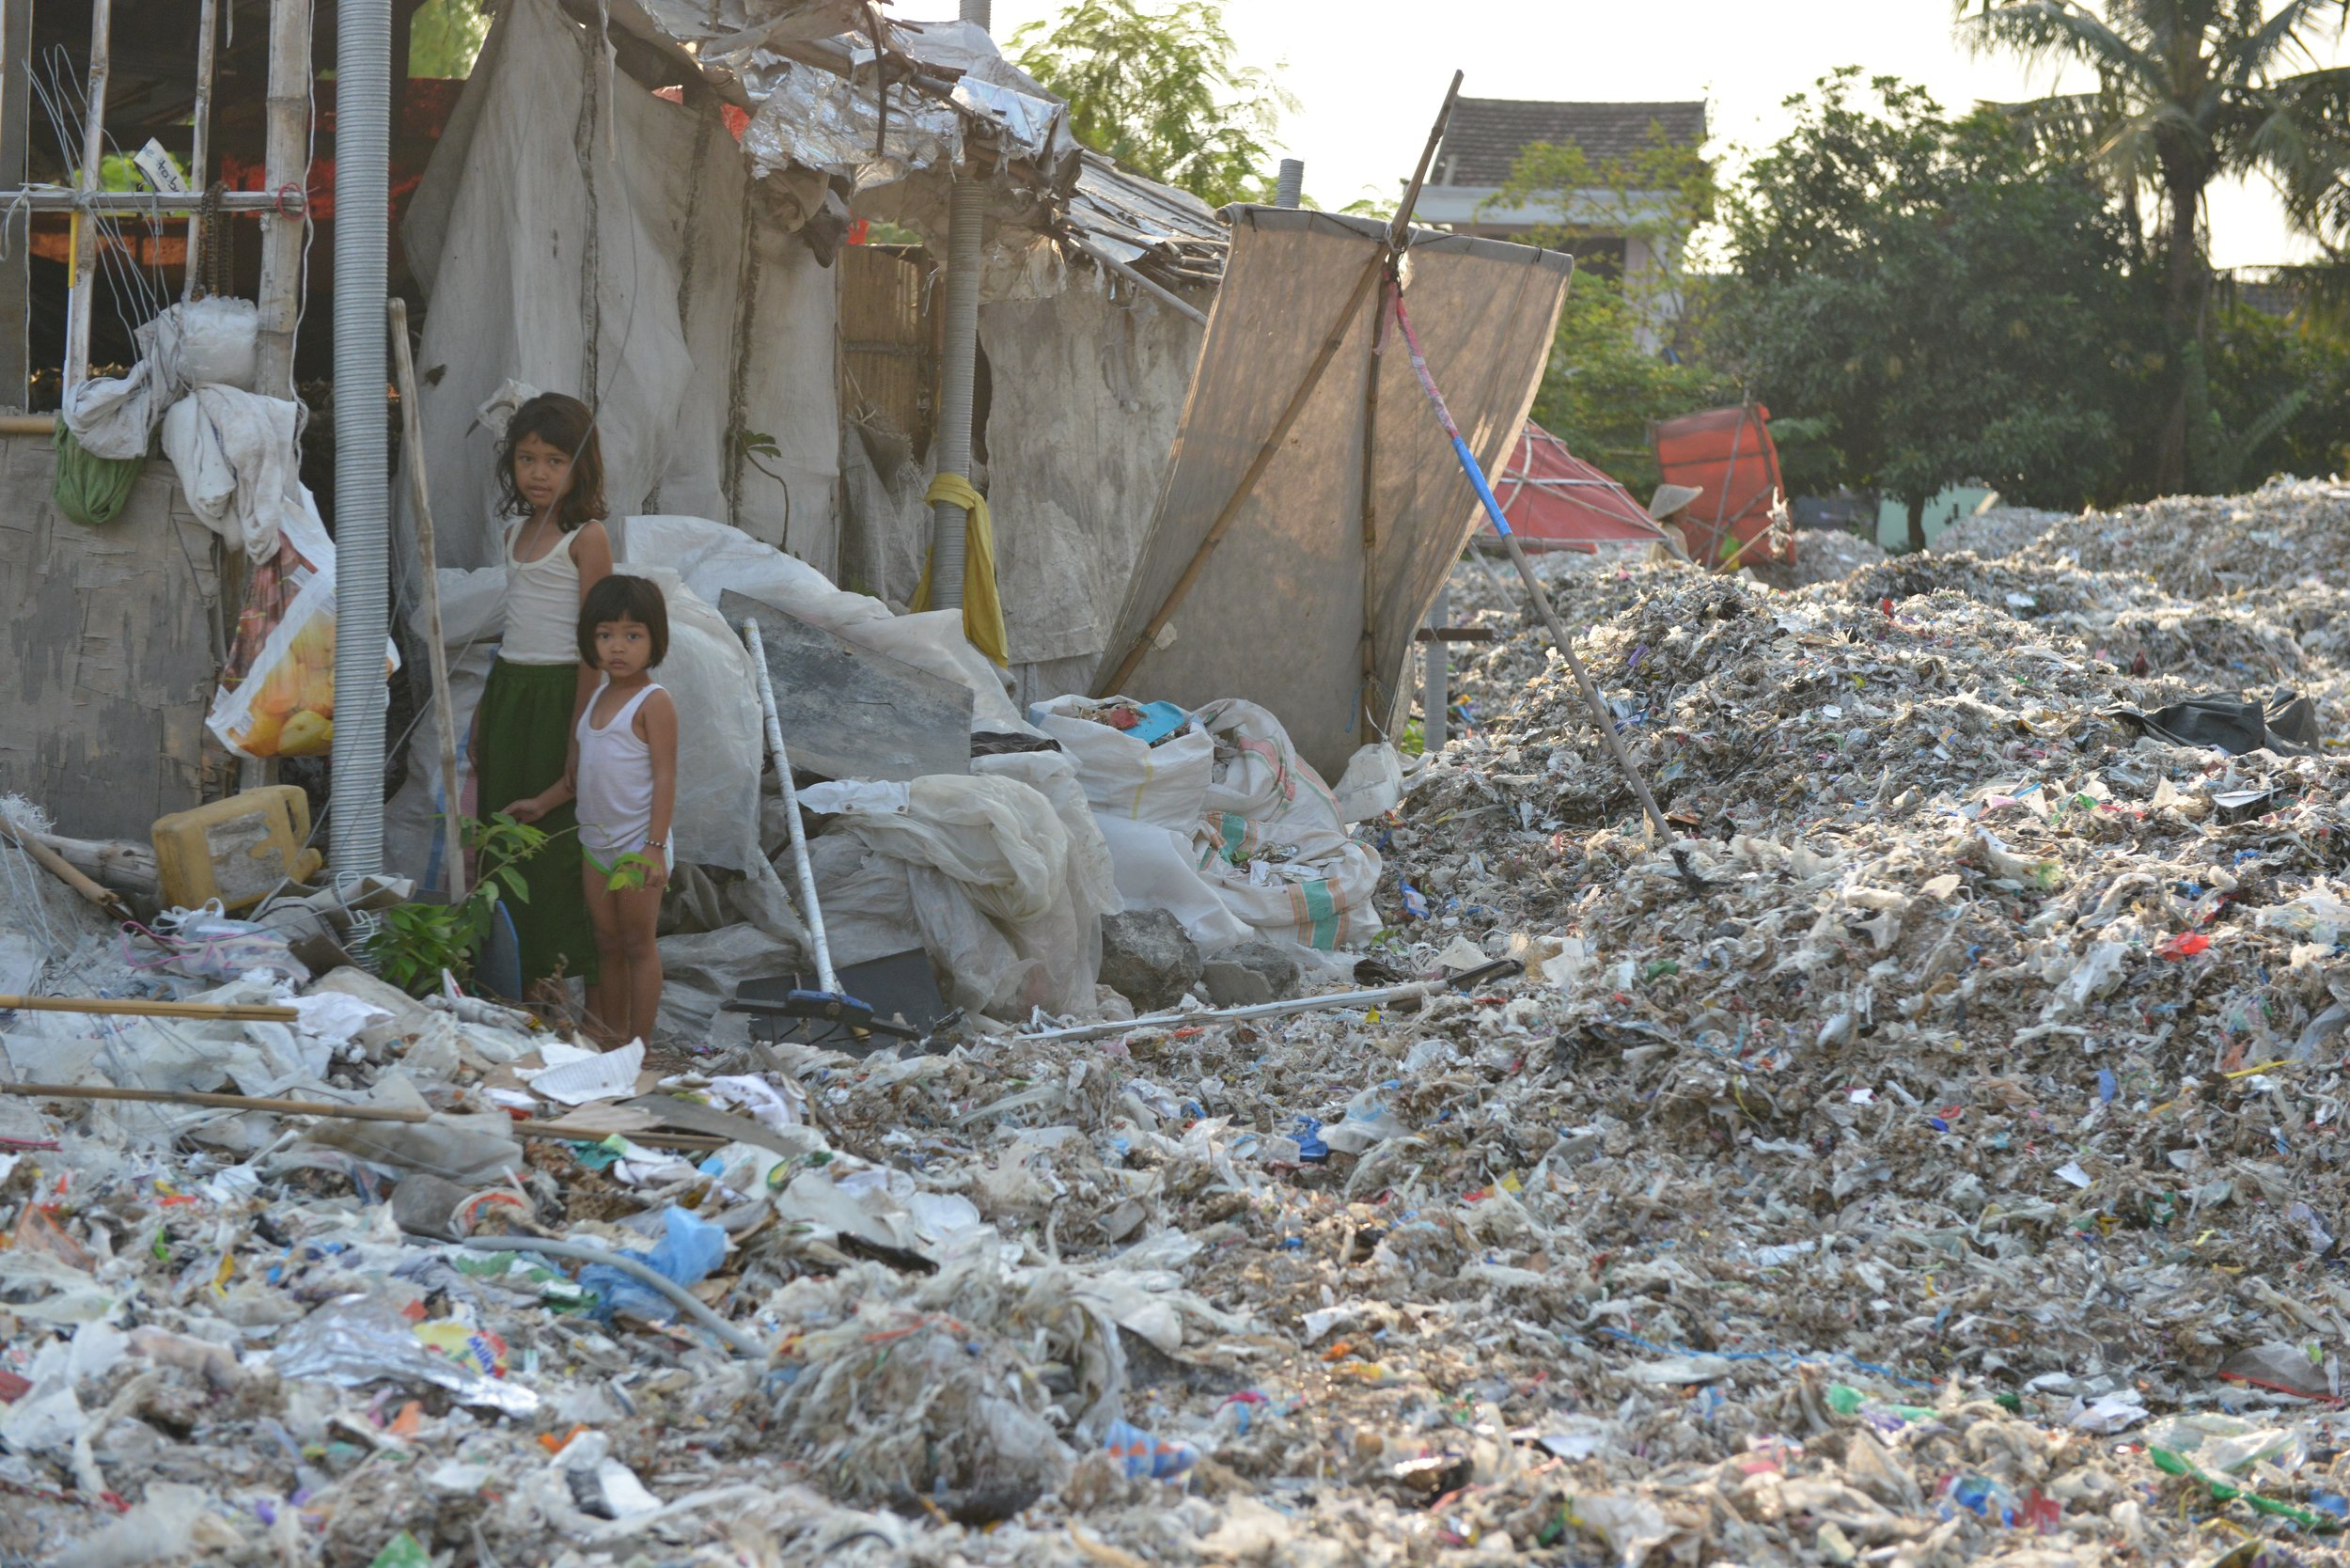 Children in Indonesia amid a field of plastic waste, all imported from the US, EU, and other Western nations.